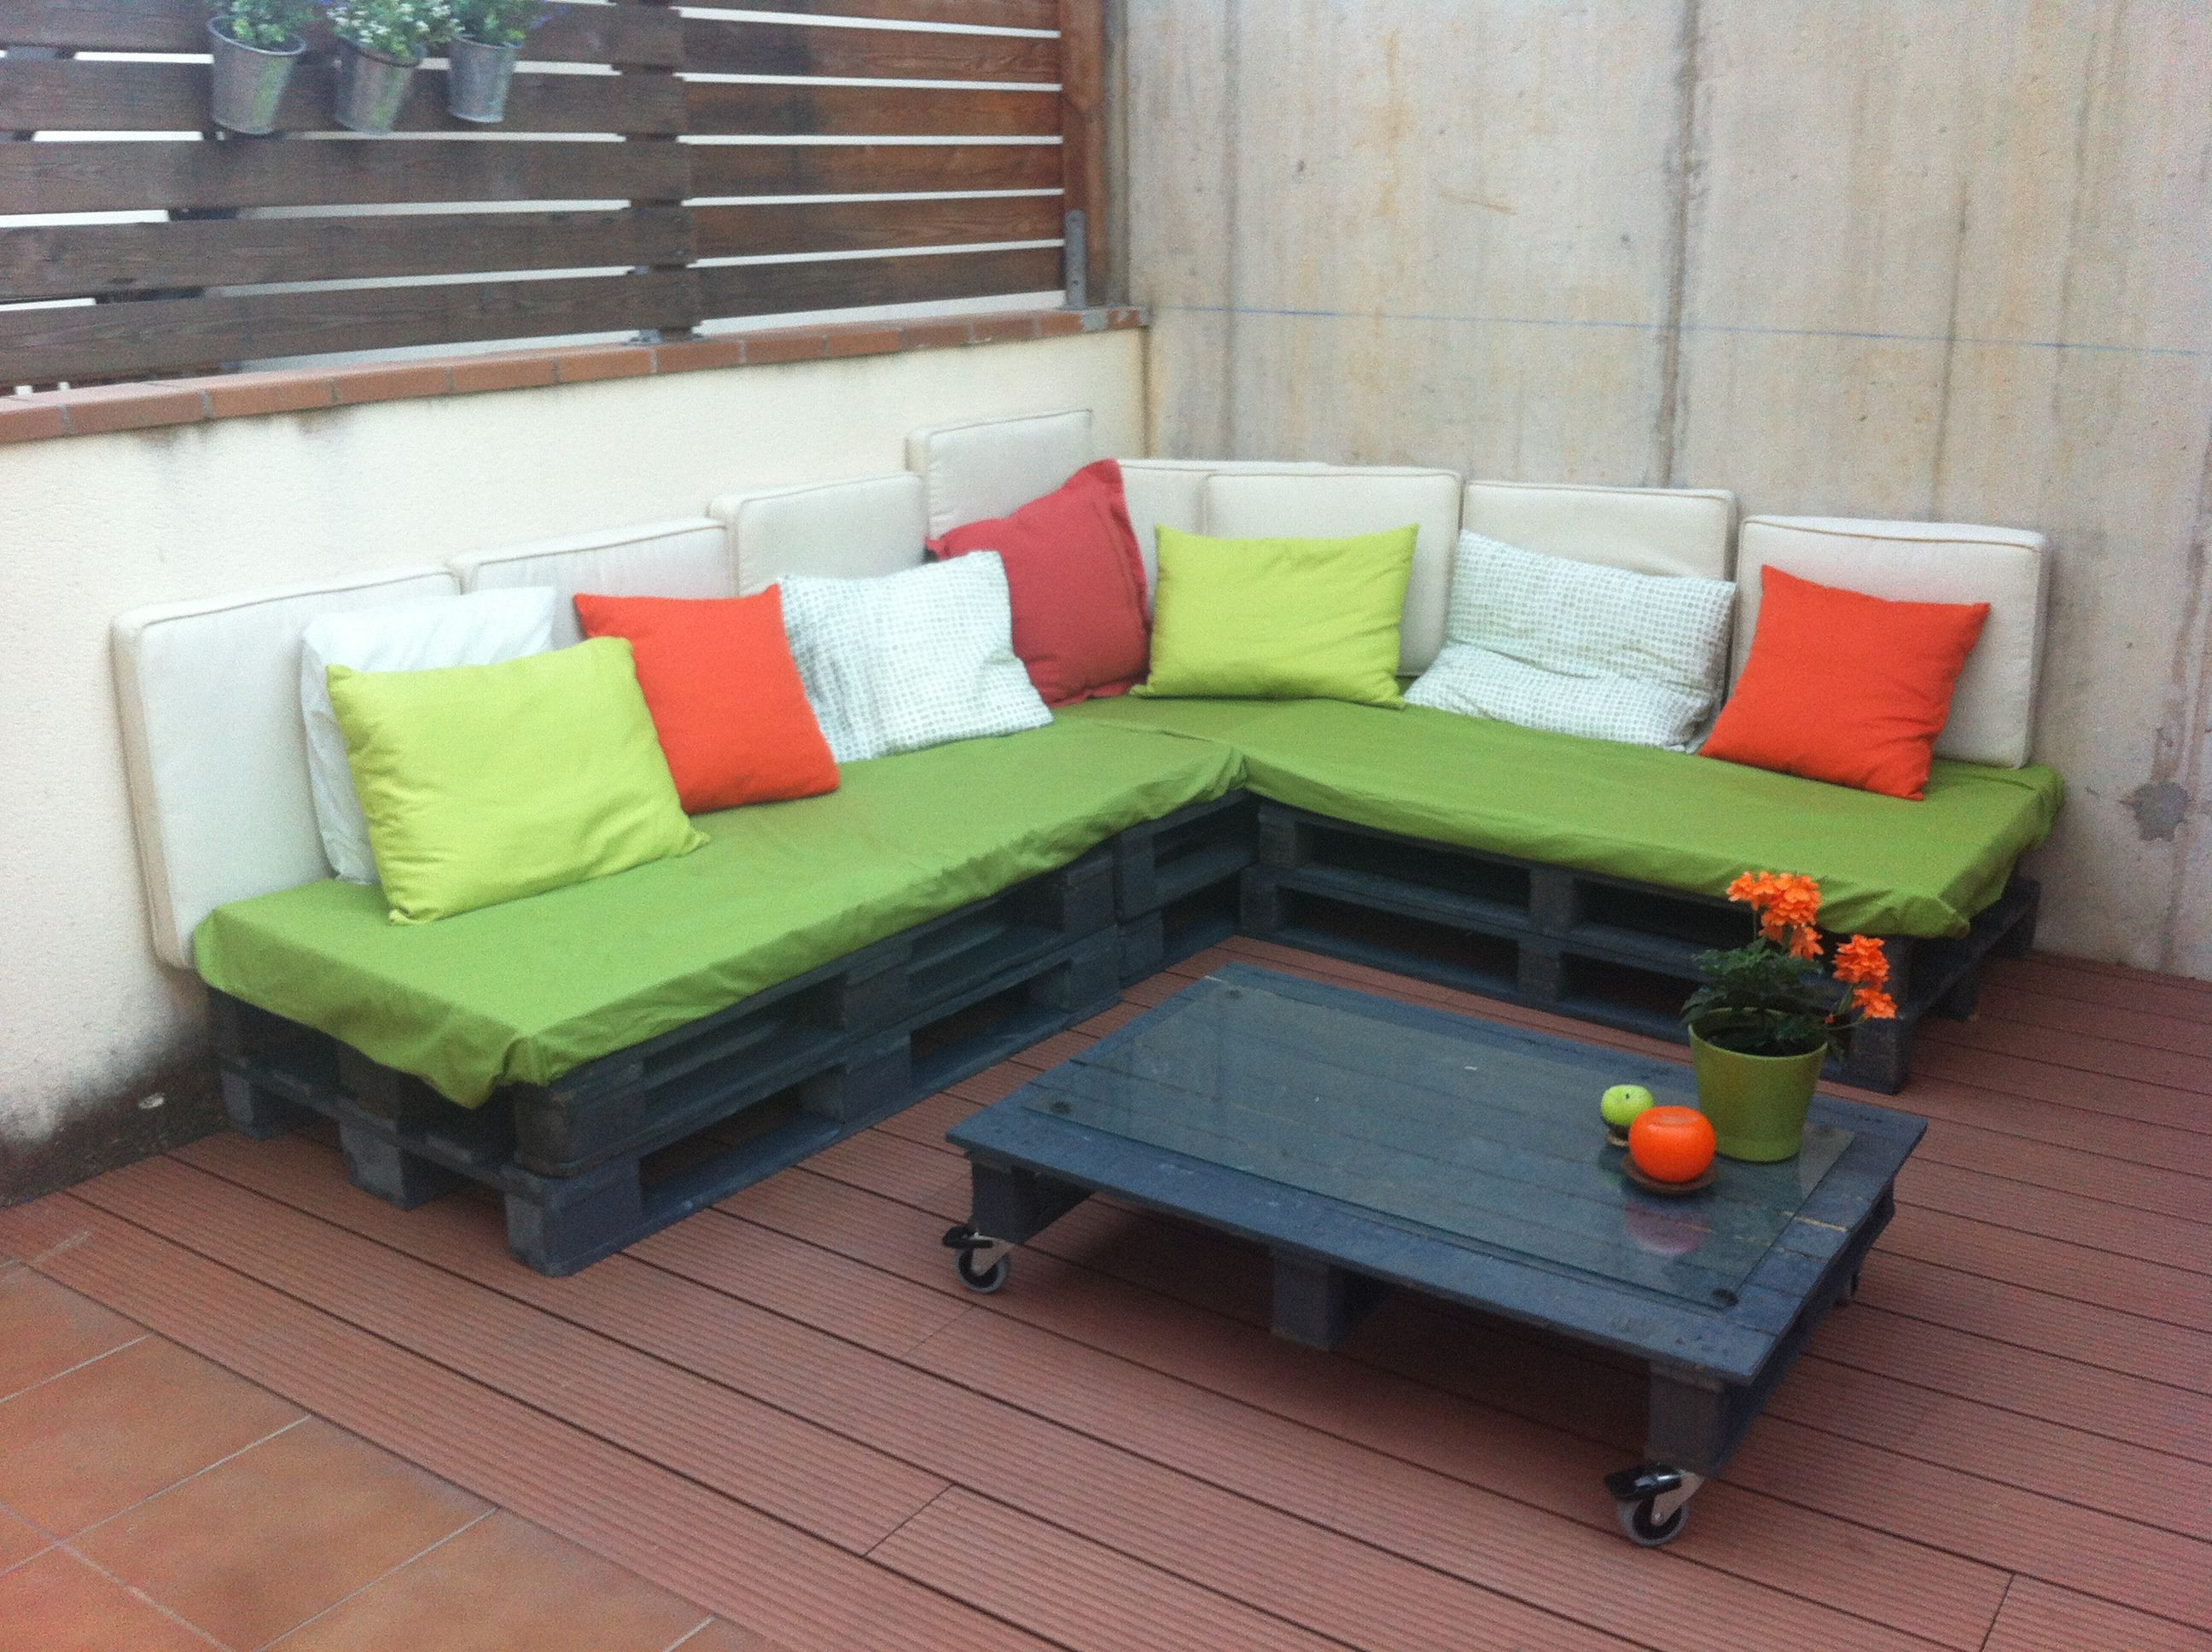 DIY sofa made with pallets Projects to Try Pinterest Diy sofa